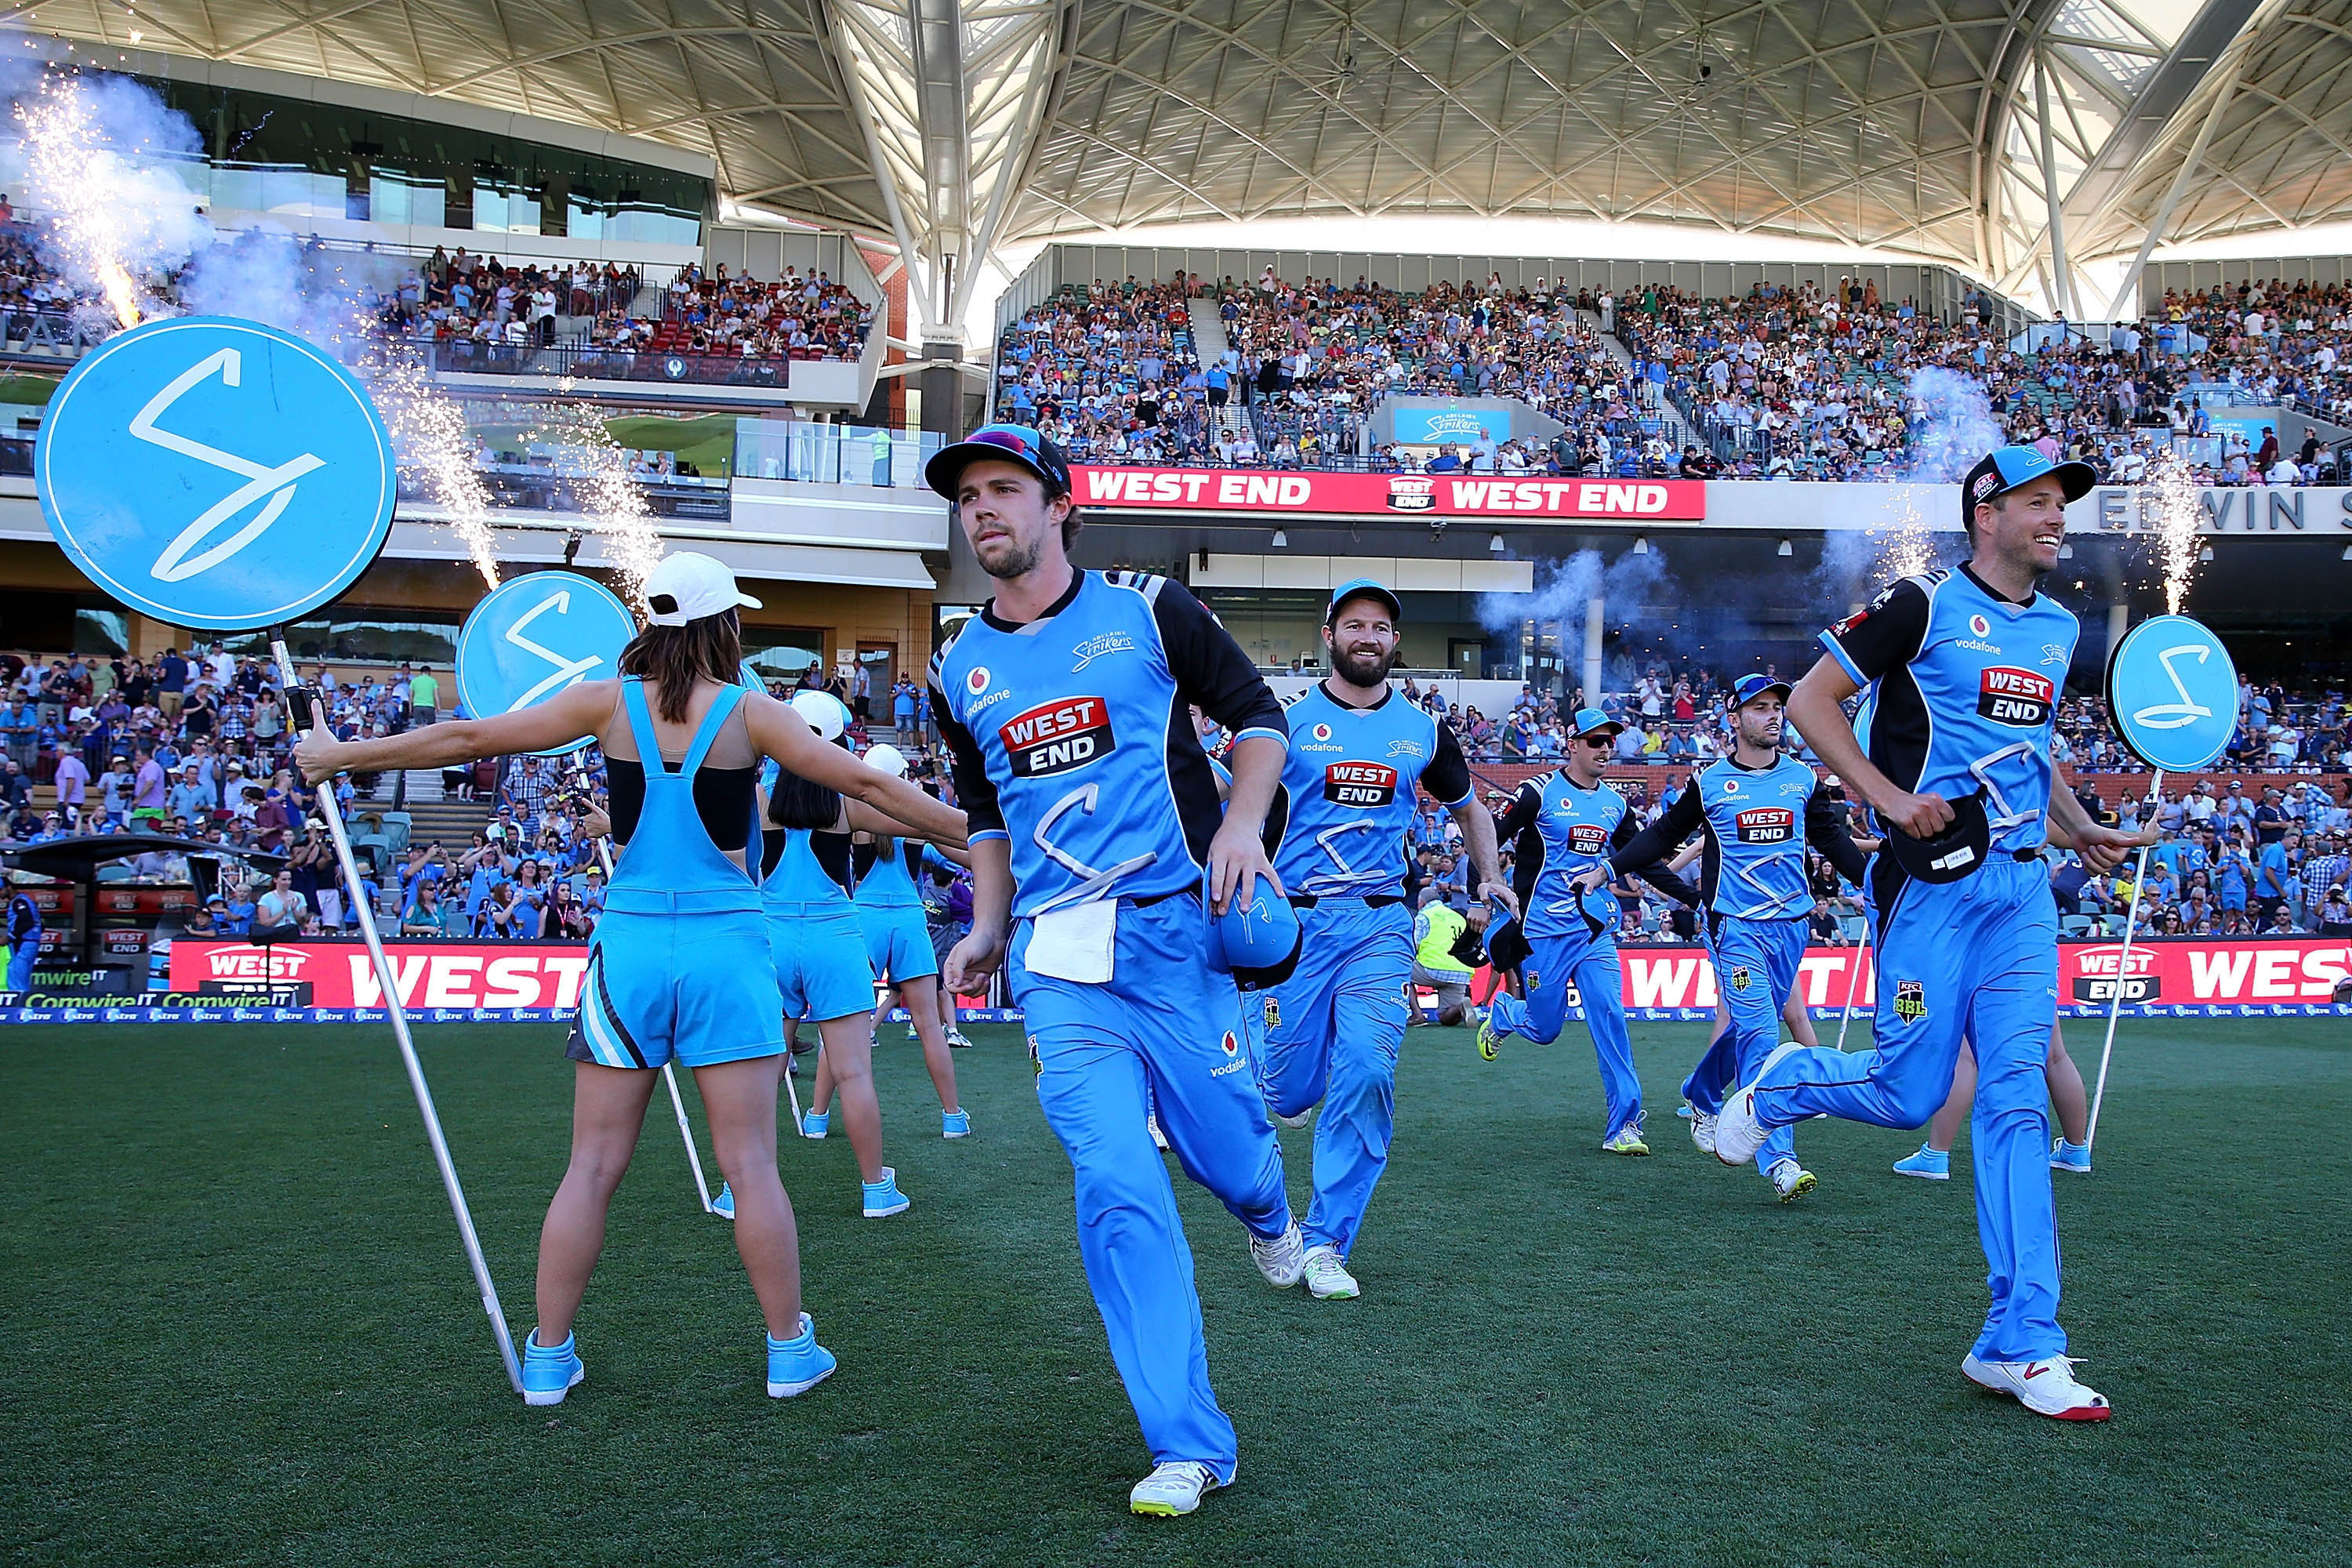 February 4, 2018: The Adelaide Strikers run onto the ground to take to the field during the Big Bash League Final in Adelaide, Australia. Australia's Big Bash League is an example of a successful business model. (Photo by Paul Kane/Getty Images)